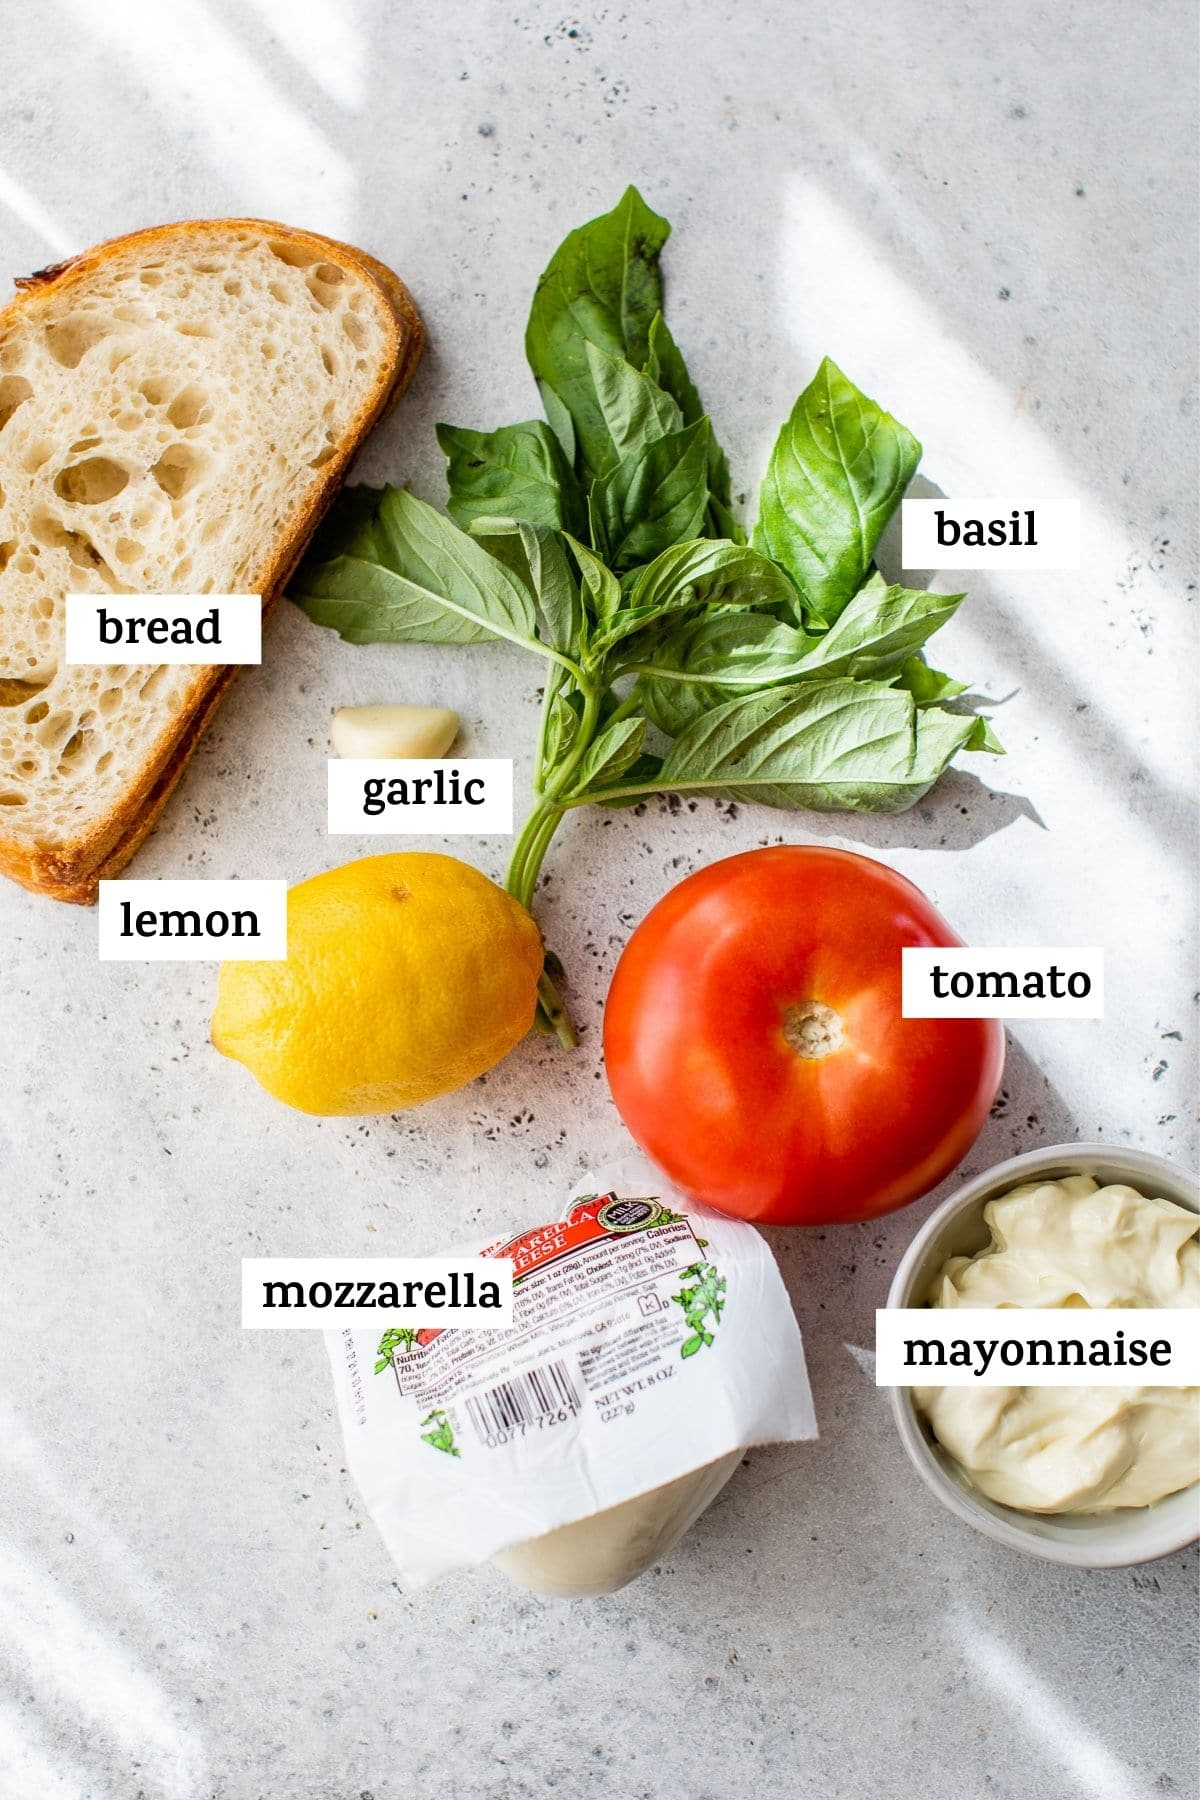 ingredients to make a sandwich